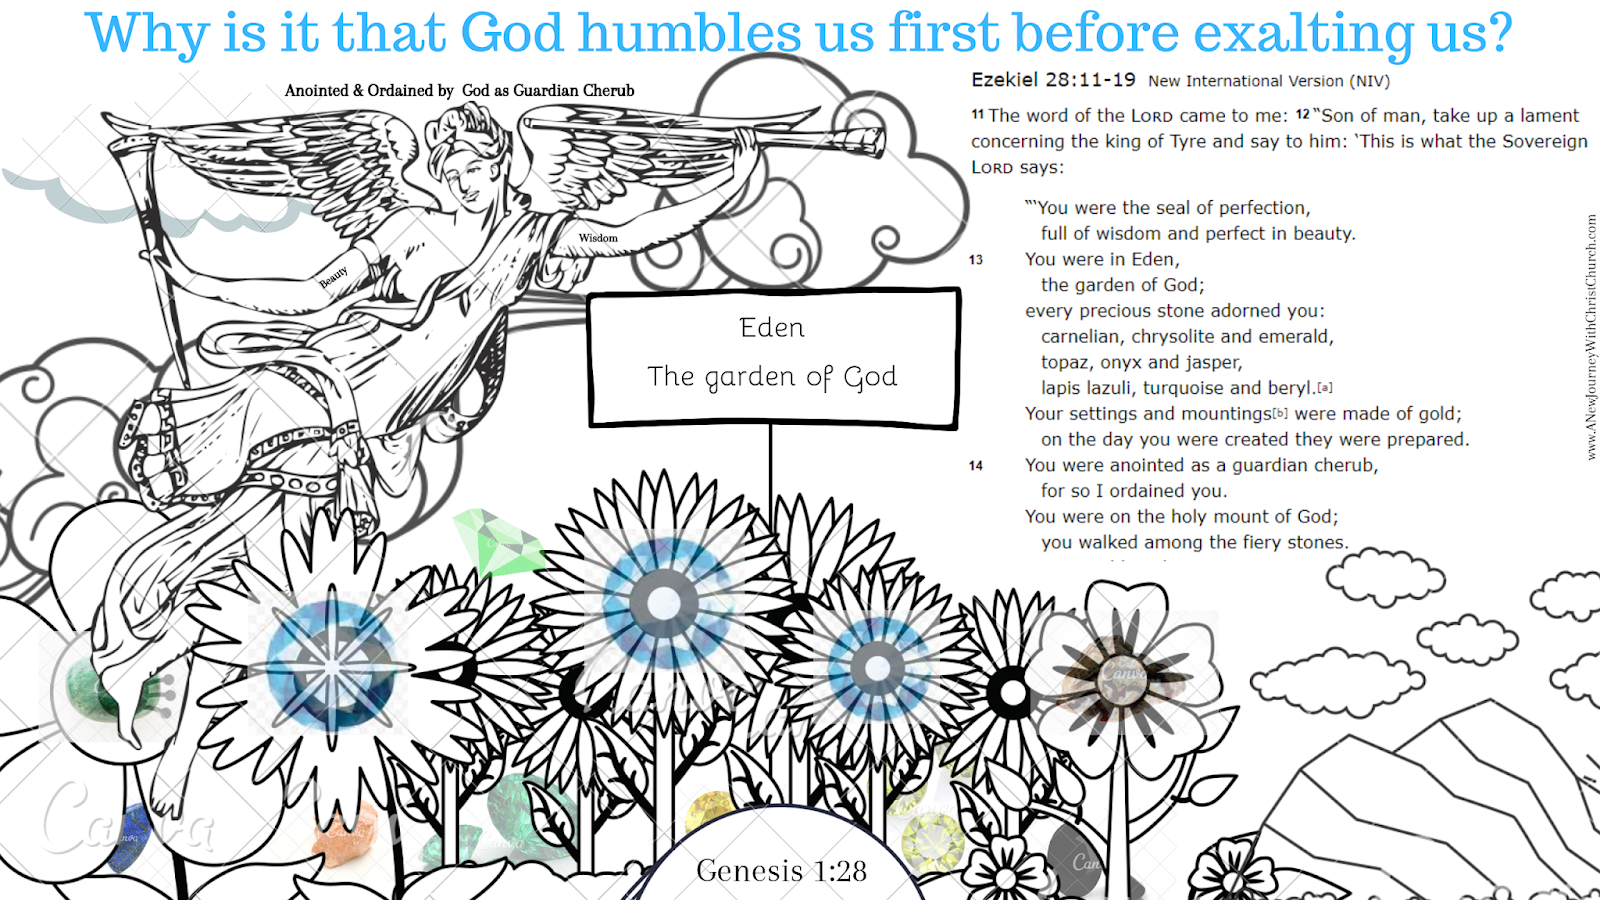 Why is that God humbles us before he exalts us?